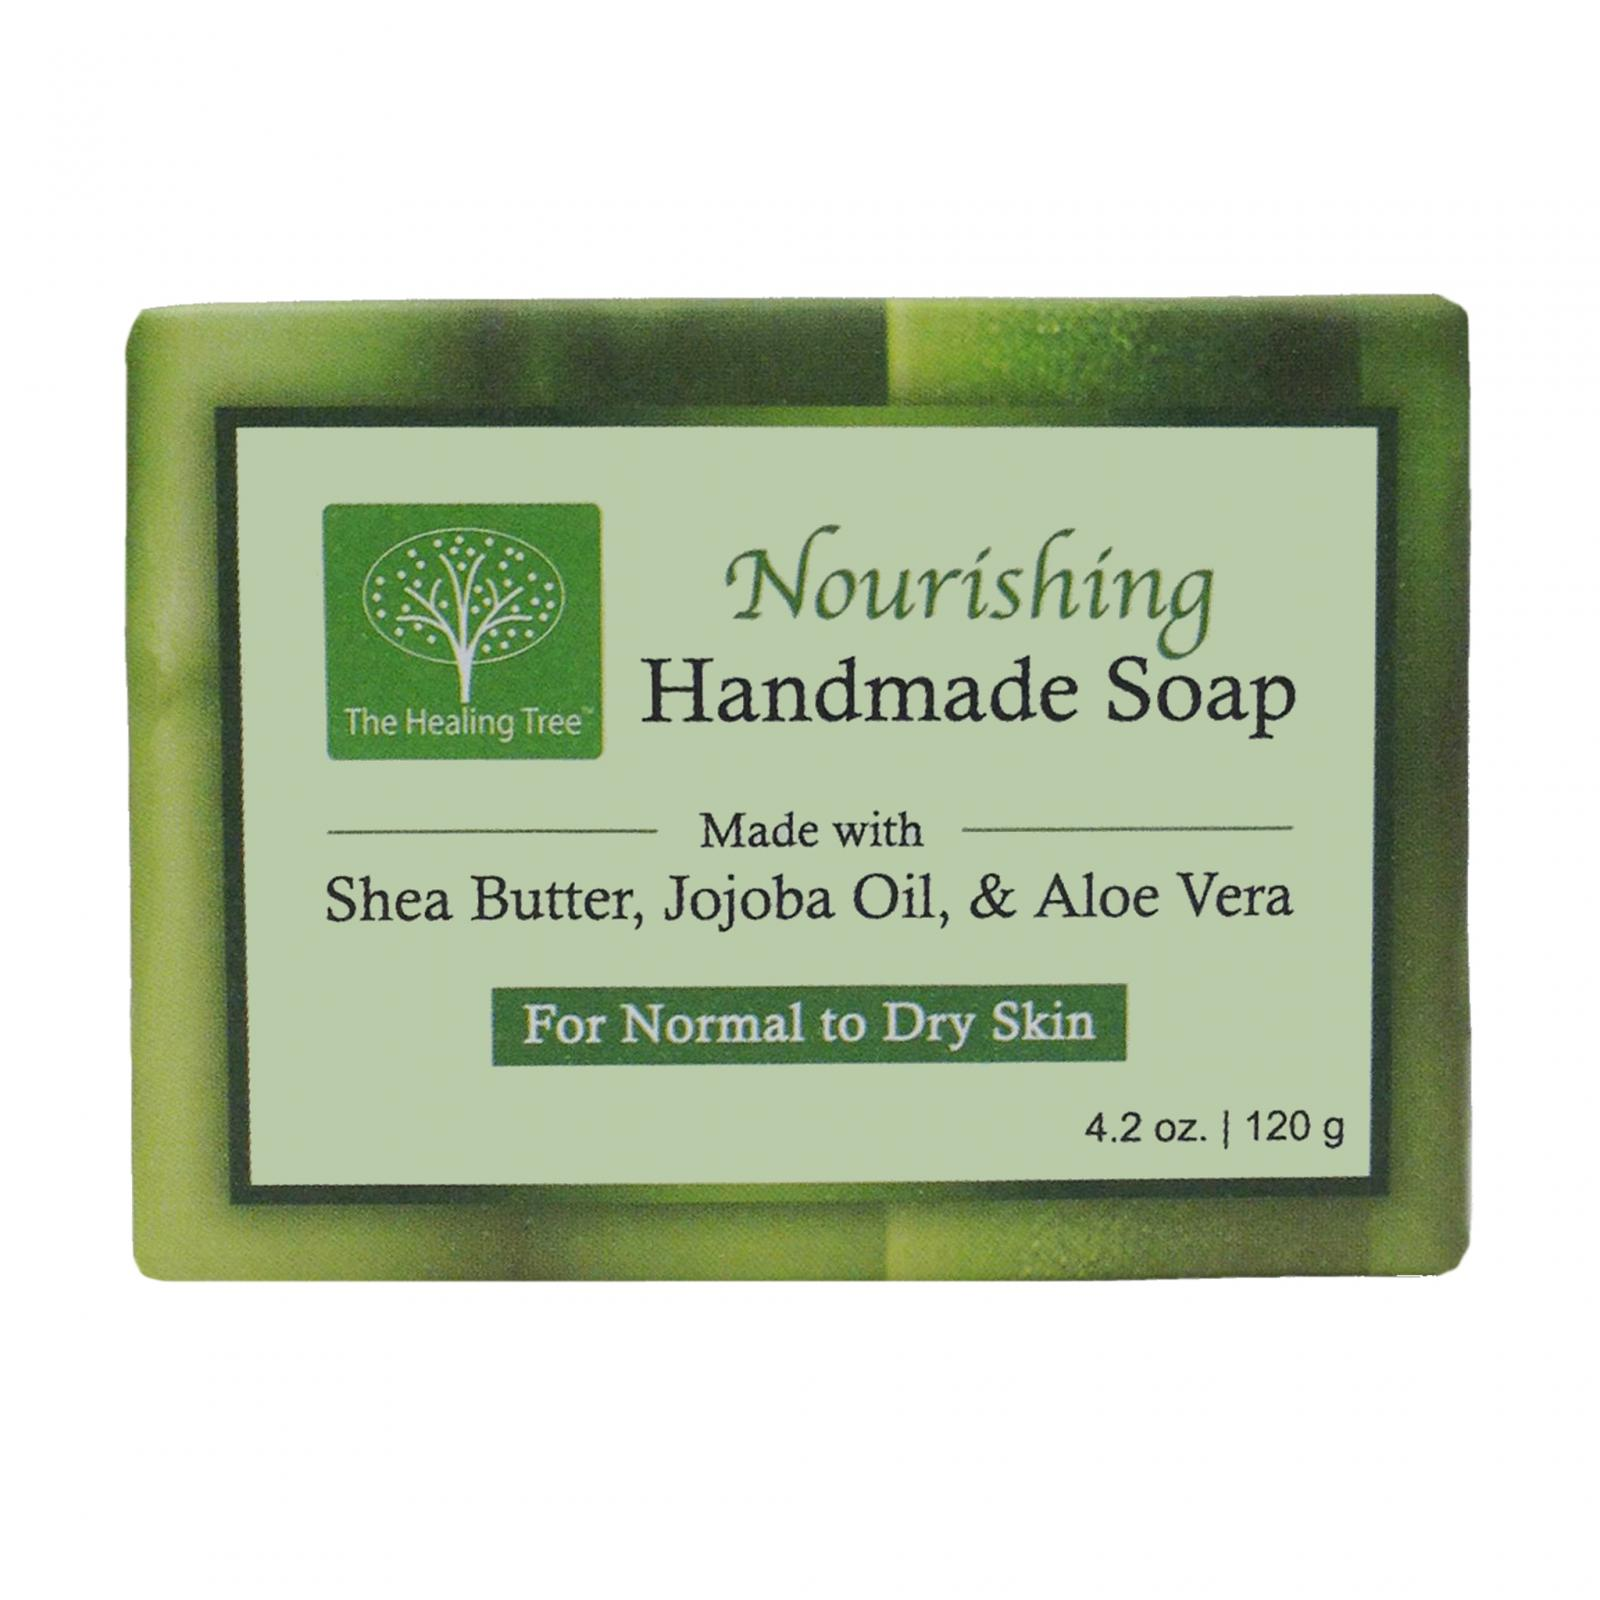 The Healing Tree Nourishing Handmade Soap helps Hydrate & Moisturize Your Skin